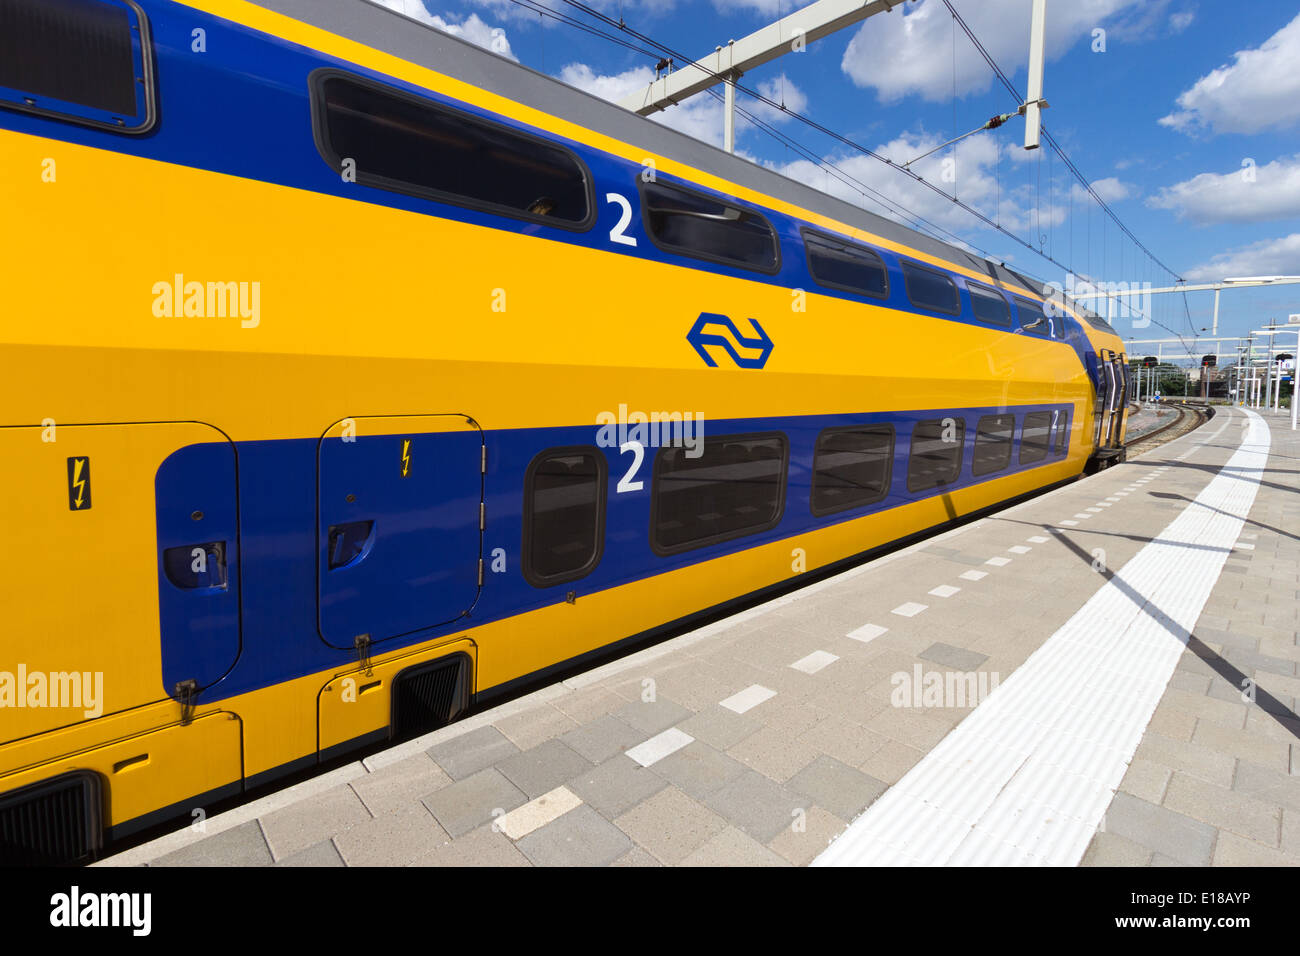 Intercity train at Arnhem Central Station, The Netherlands - Stock Image